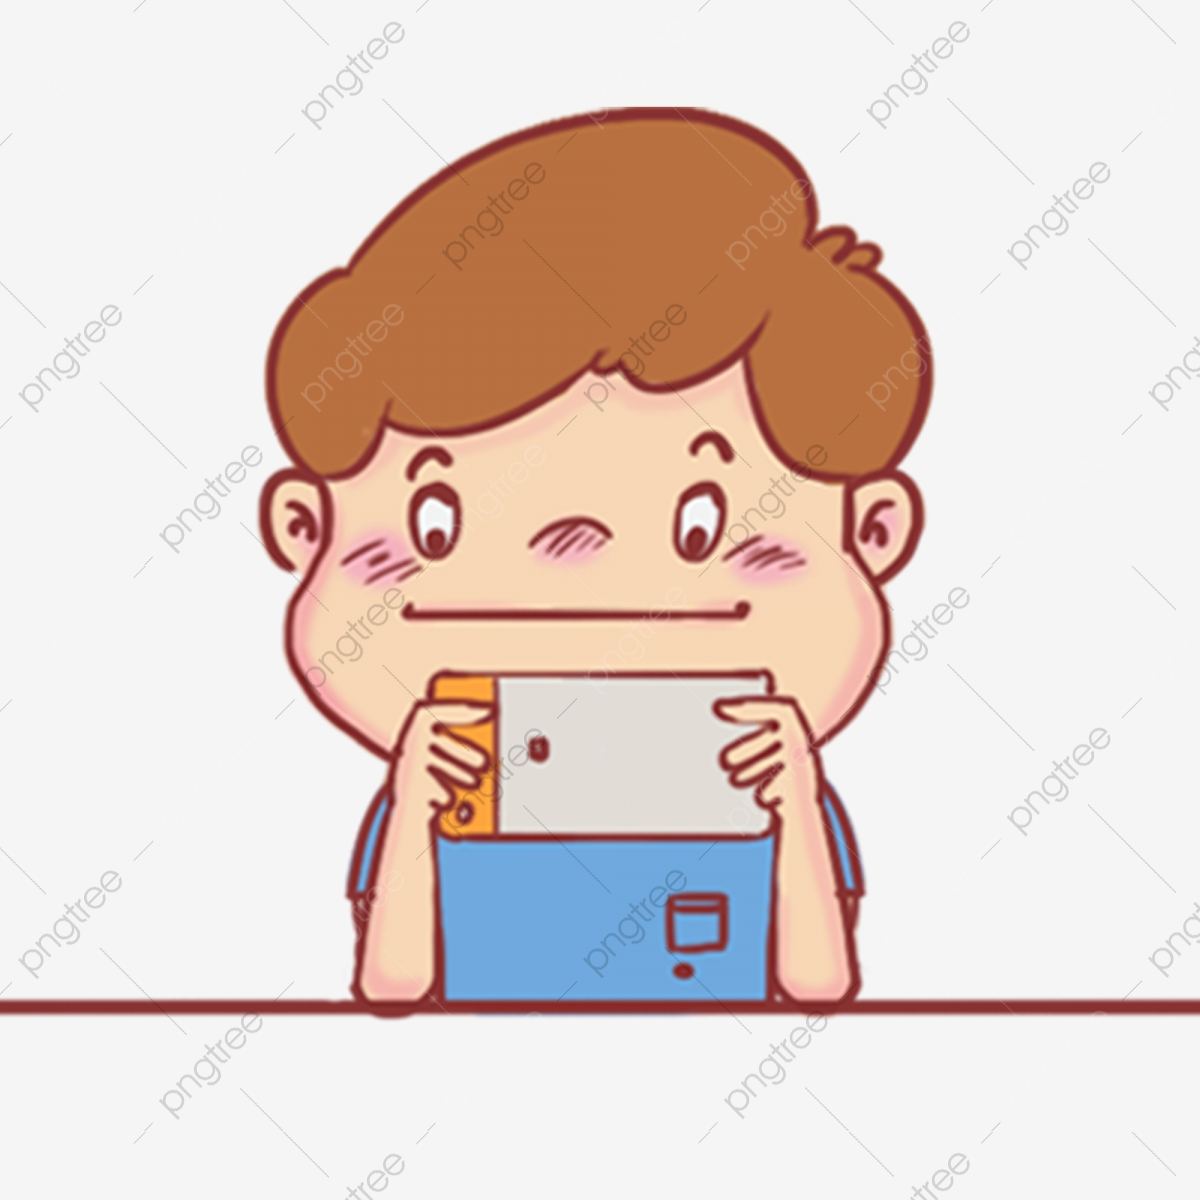 Hand Painted Children Children Playing Mobile Games Mobile Game Self Timer Video Video Chat With Family Communicate With Hand Painted Children Png Transparent Clipart Image And Psd File For Free Download